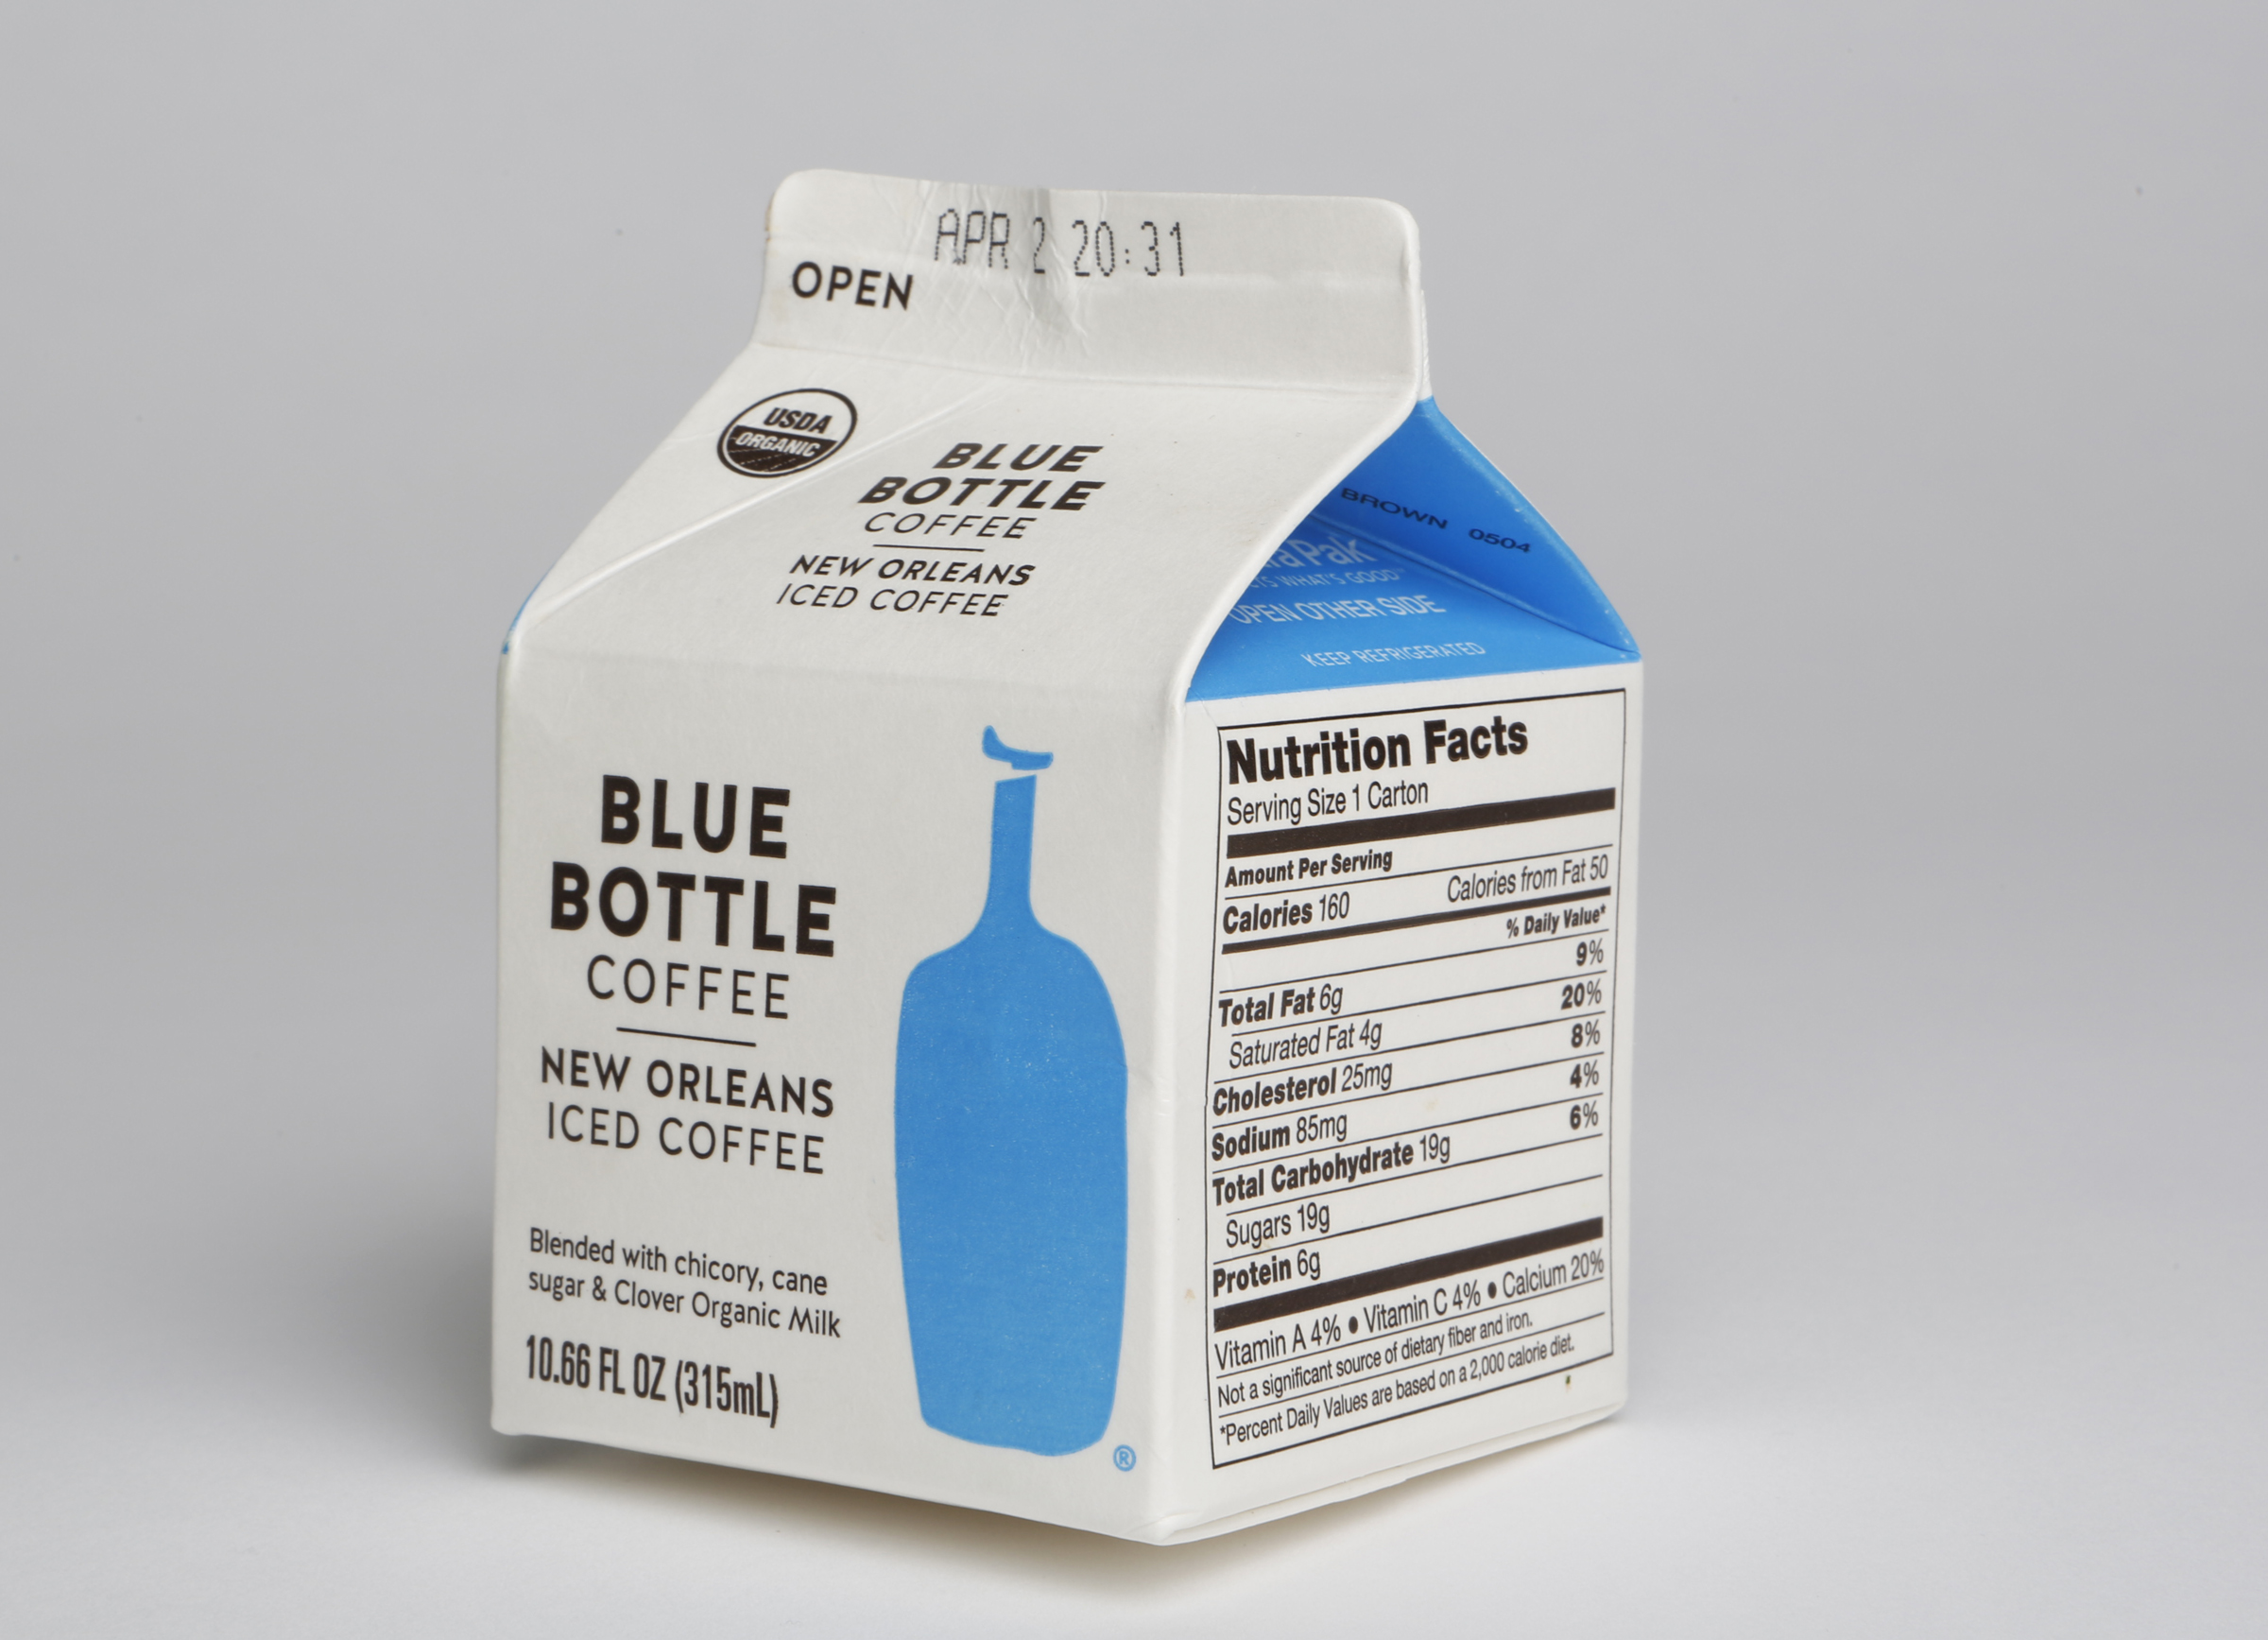 We hear Blue Bottle Coffee is raising funding, but the company says